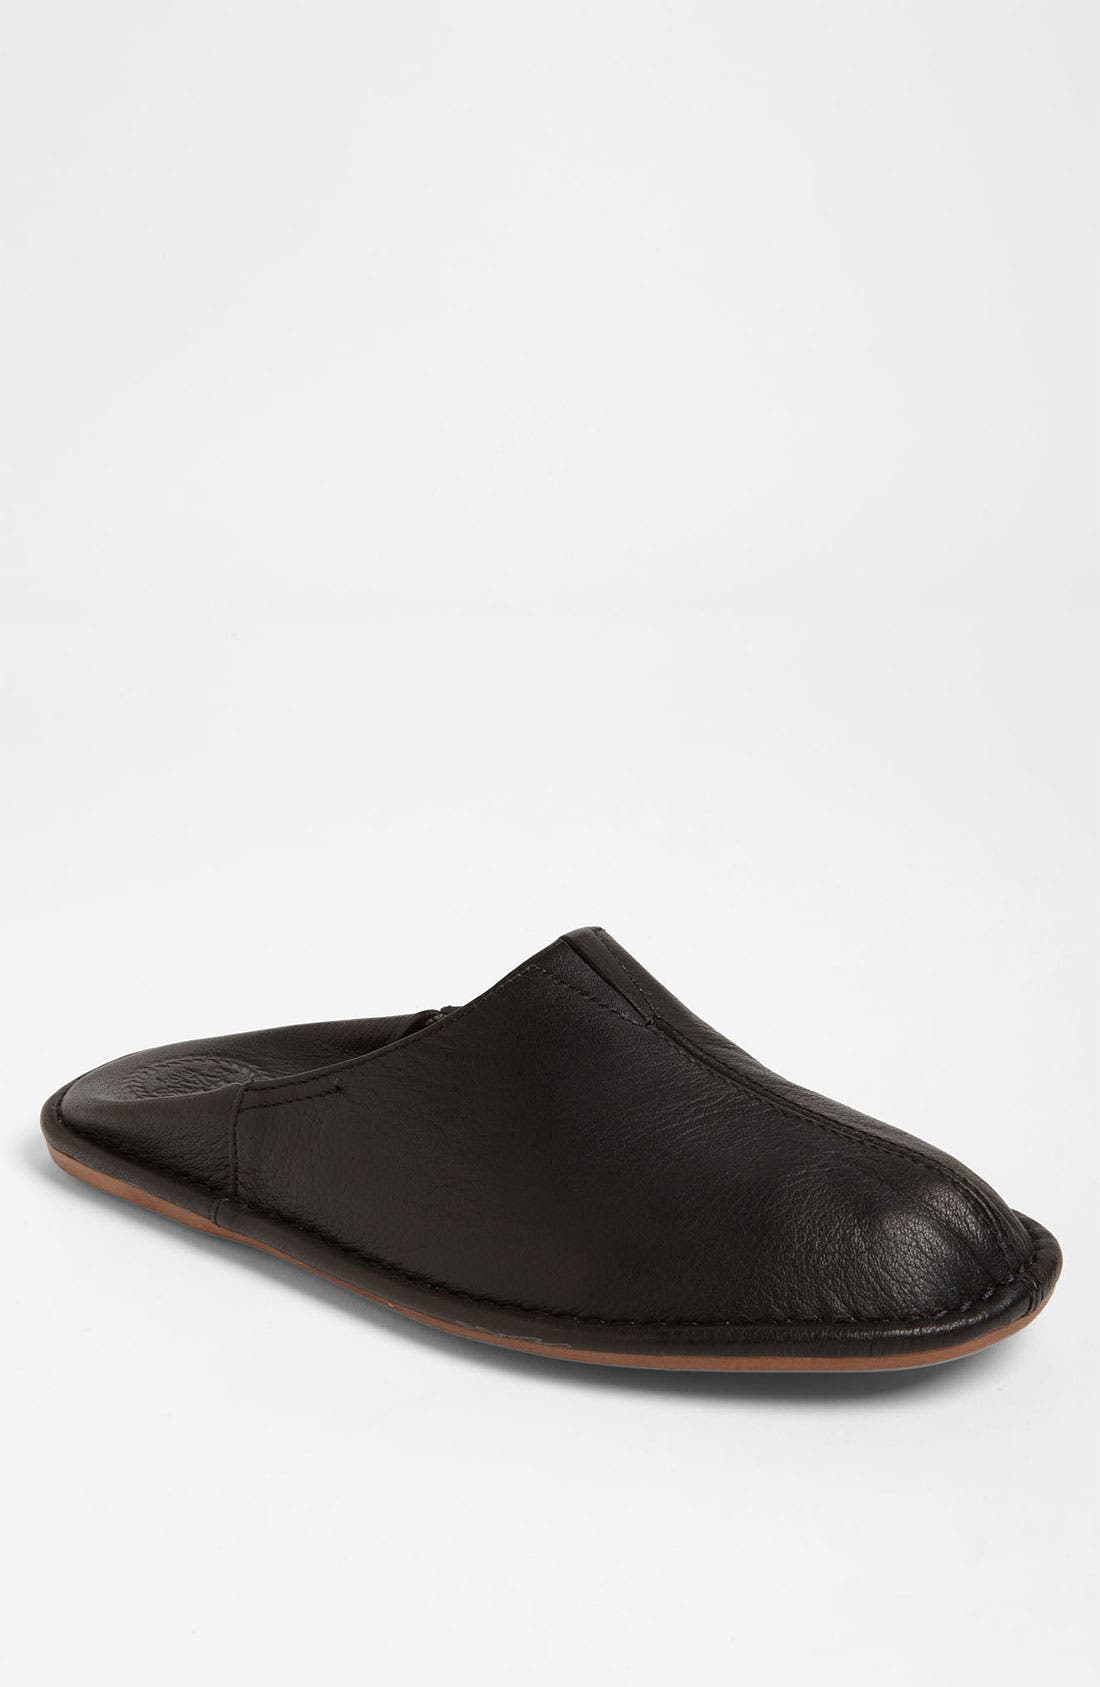 Alternate Image 1 Selected - L.B. Evans 'Pierce' Slipper (Online Only)